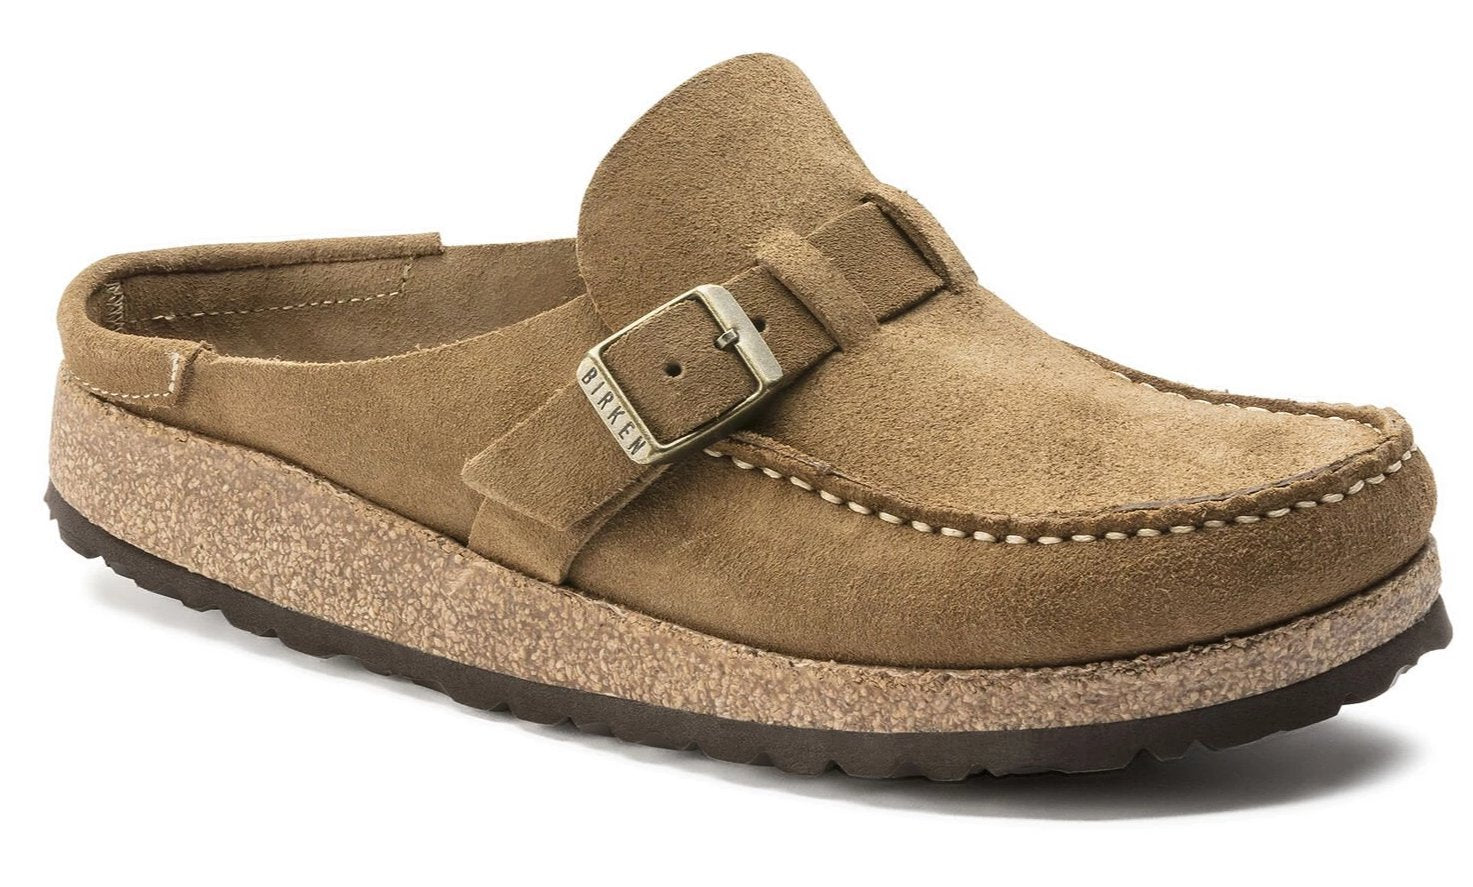 Buckley - Tea Suede